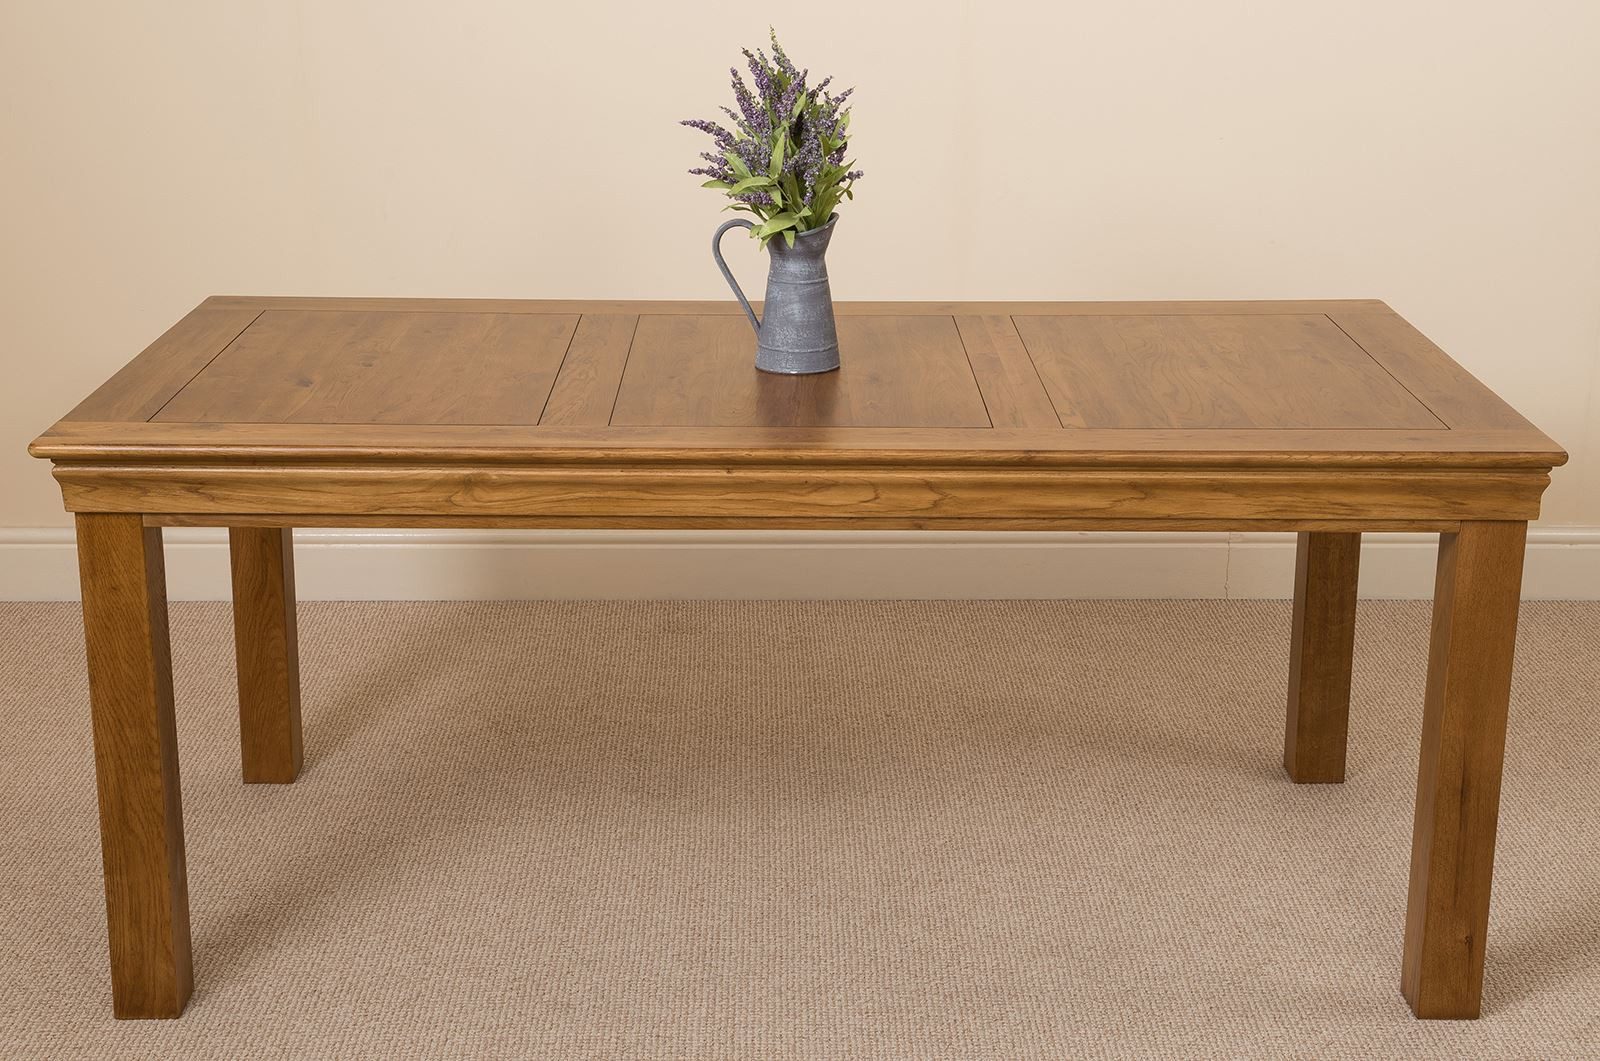 French Rustic 180cm Fixed Solid Oak Dining Table and 8  : 70ec0814 3551 48e7 9320 404a0d348fb9 from picclick.co.uk size 1600 x 1061 jpeg 278kB